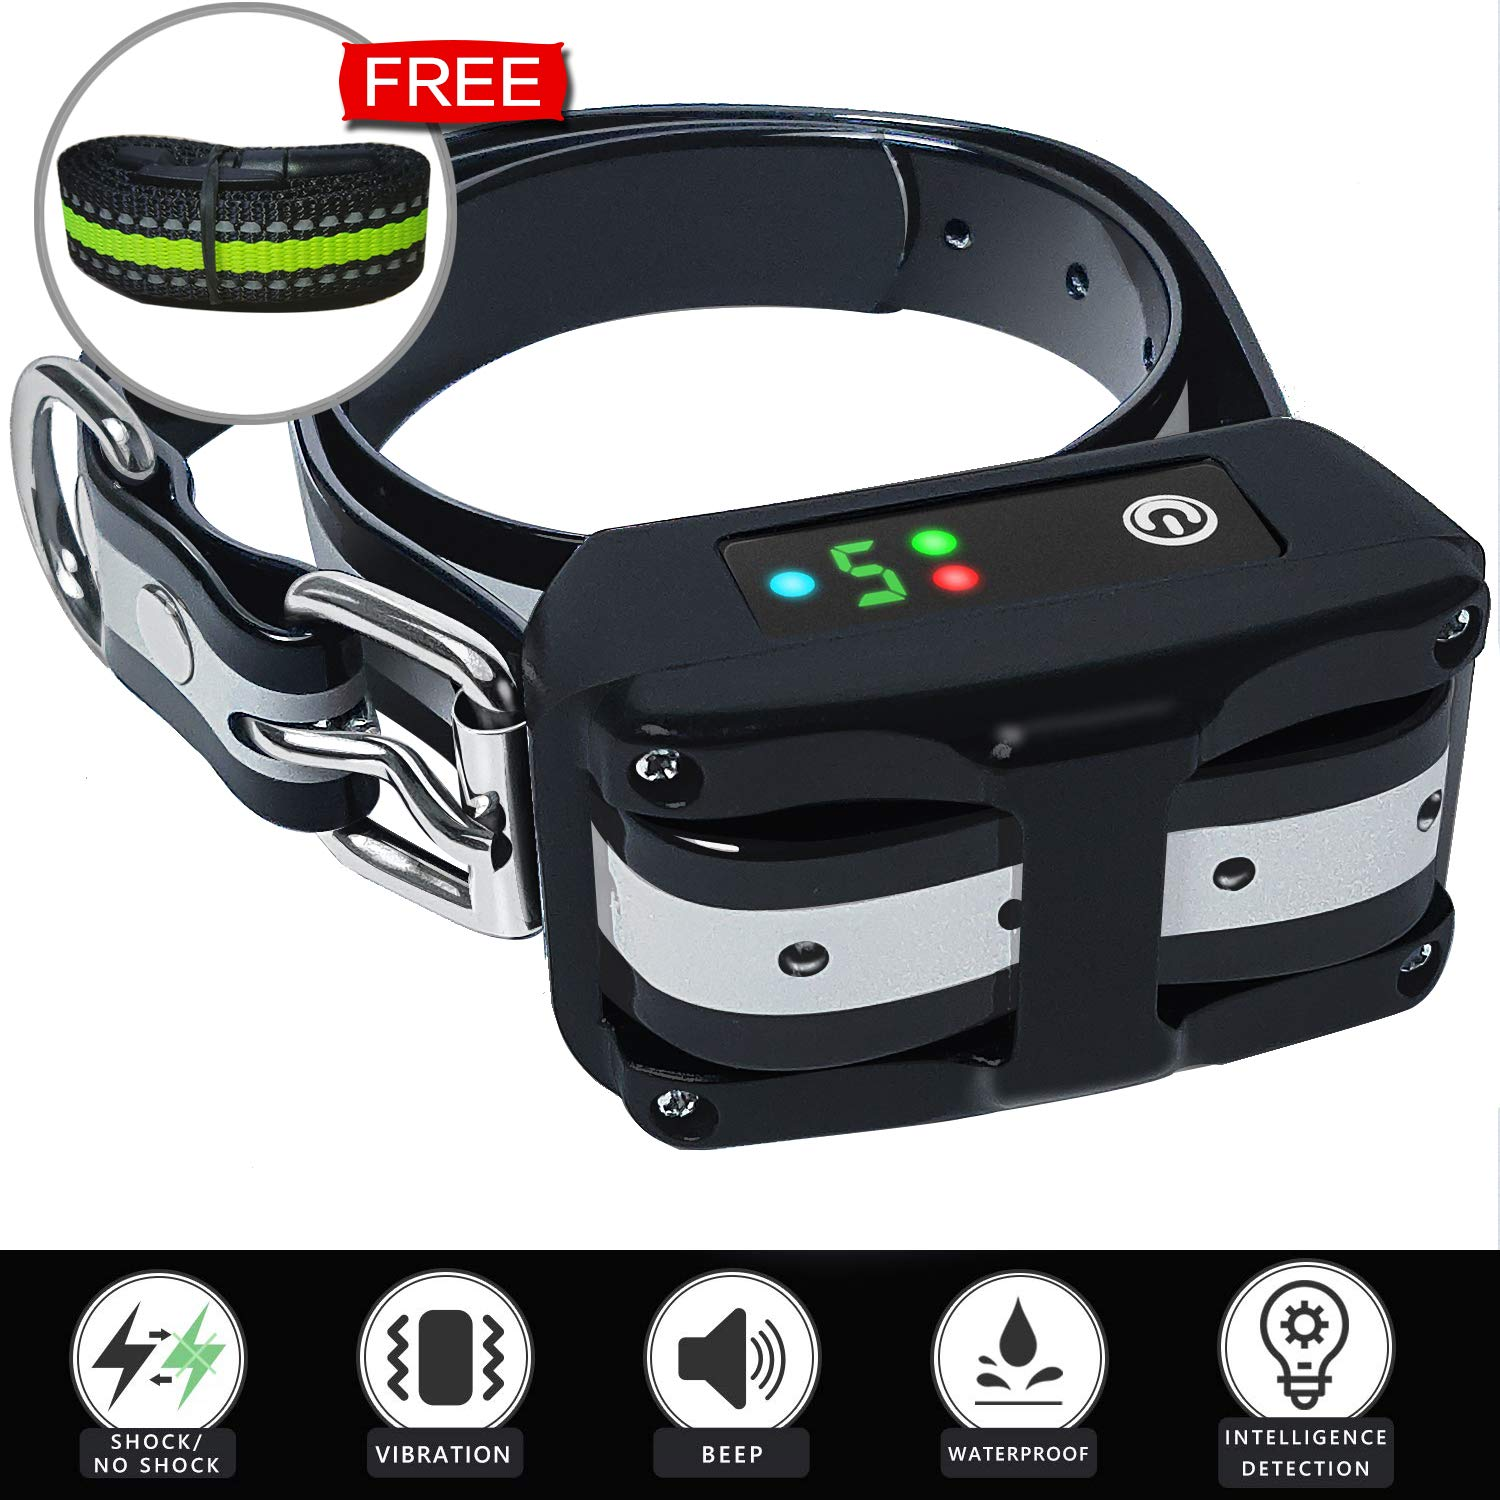 Dog Bark Collar [Upgraded 2019] - Rechargeable Anti Barking Smart Collar - Beep Vibration Shock/Not Shock Detection - Bark Collars Stop Barking for Small Medium Large Dog by CHANCH